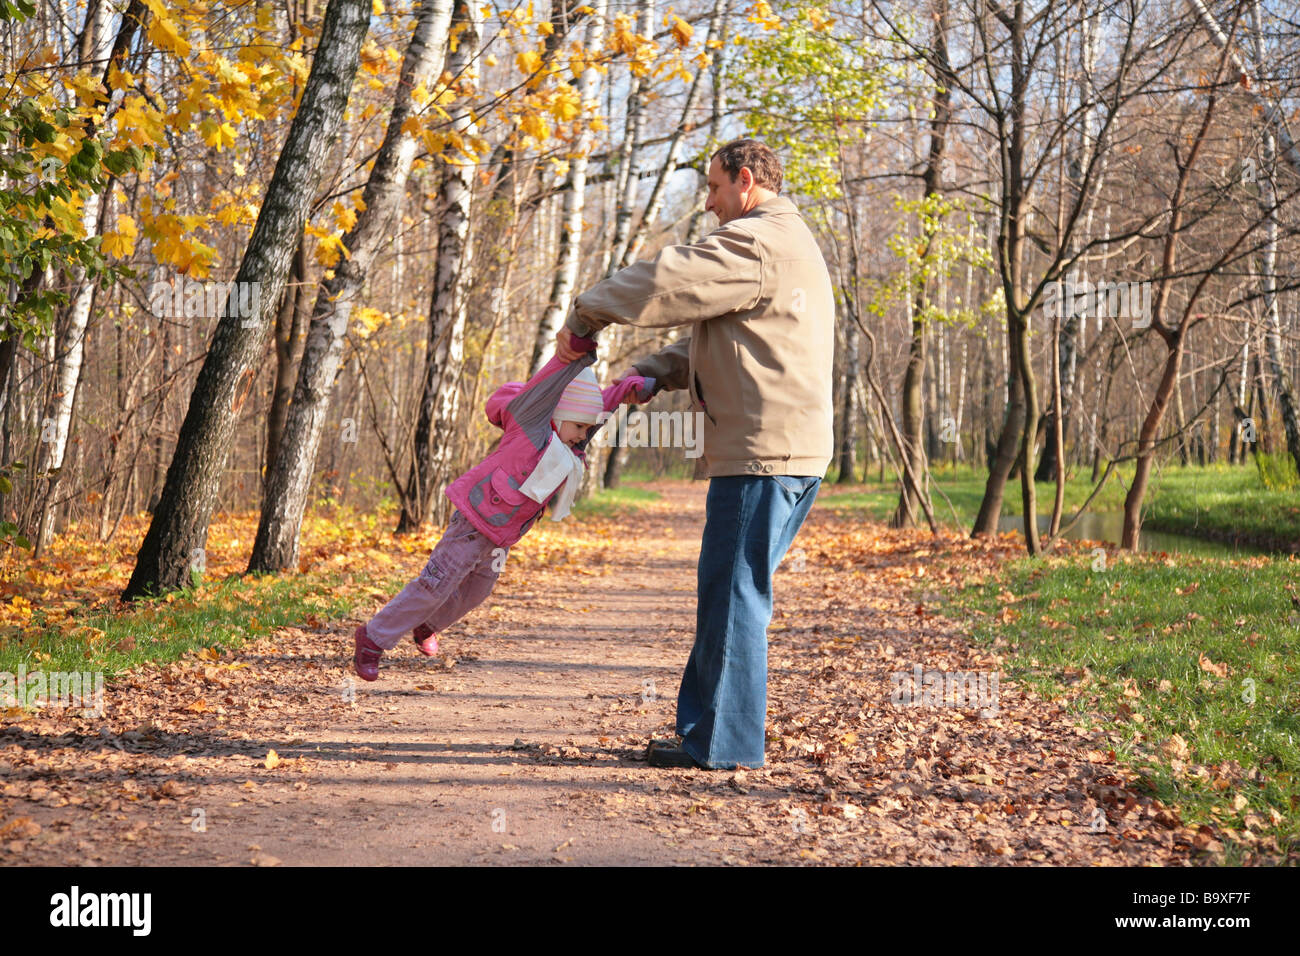 Grandfather rotates  granddaughter  in wood in autumn - Stock Image